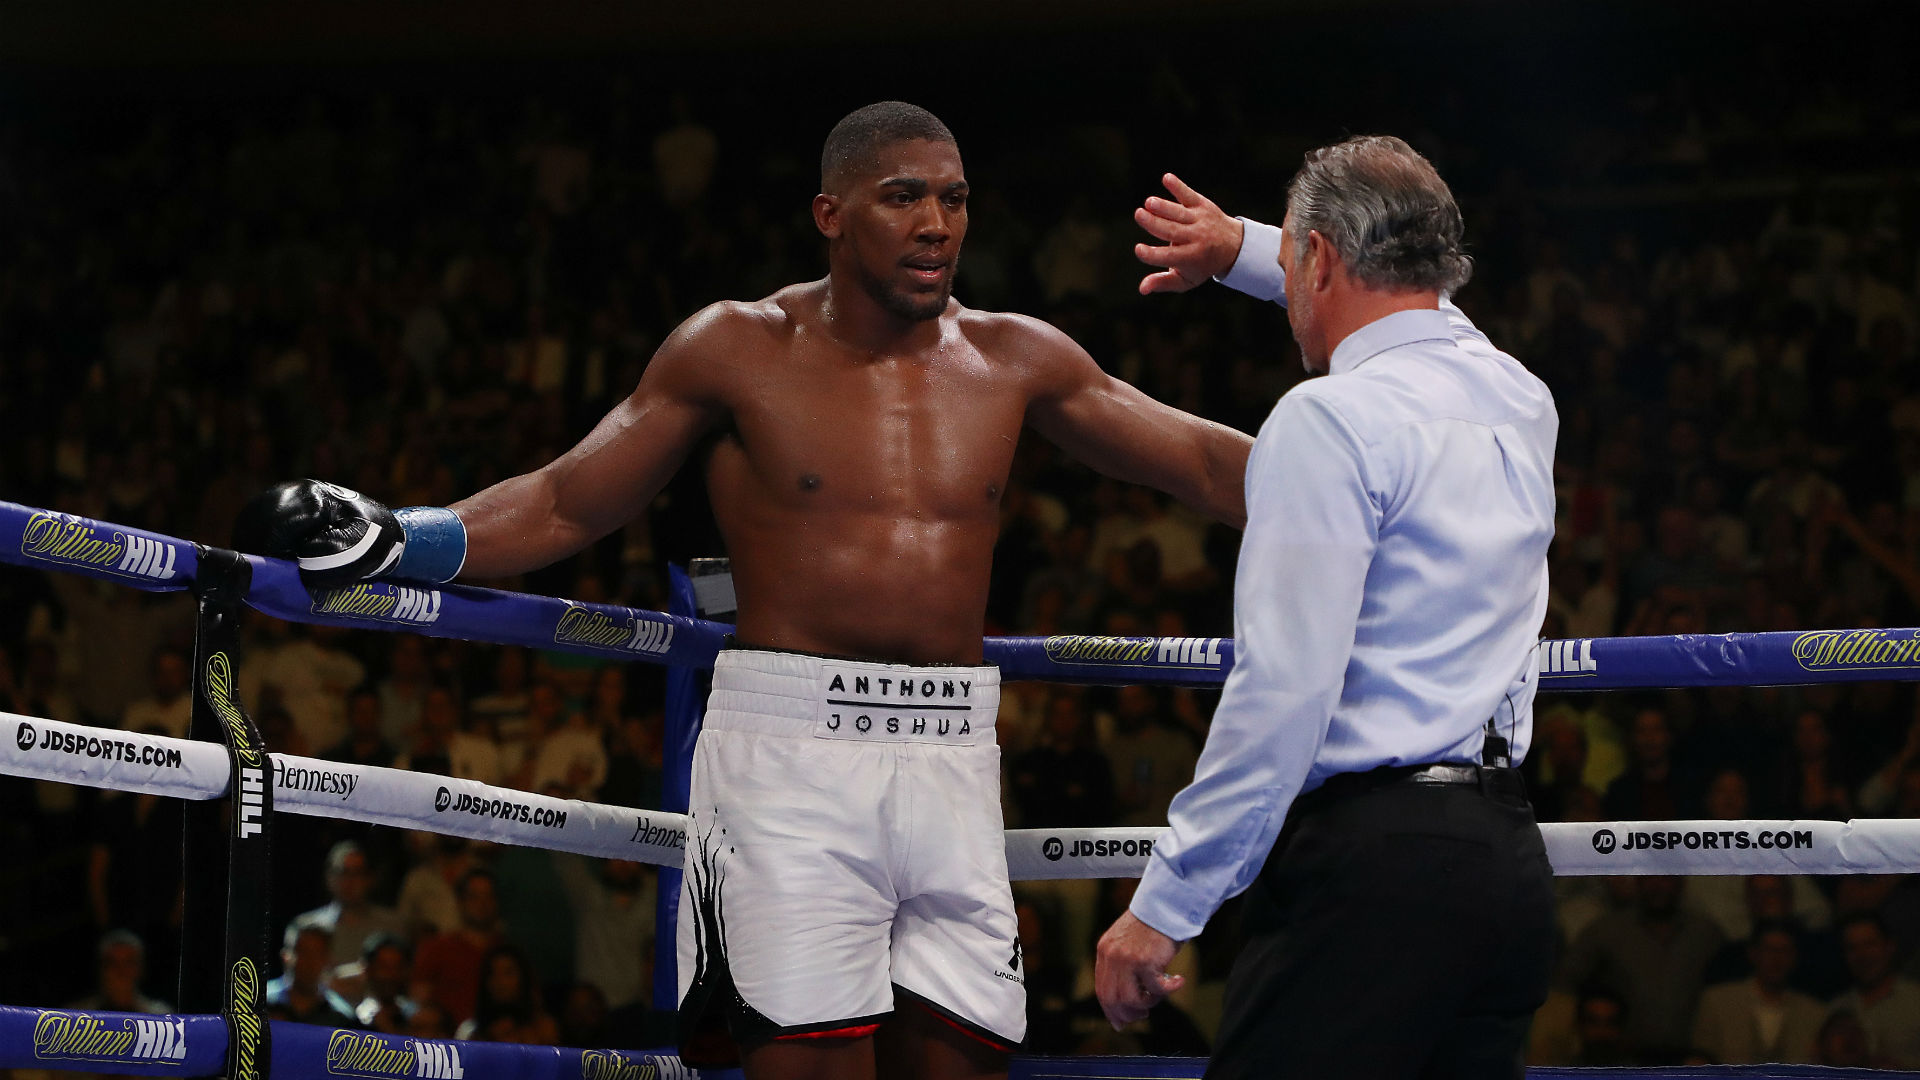 Fallen heavyweight champion Anthony Joshua took his defeat to Andy Ruiz Jr well, but the gravity of his ordeal should soon hit him.